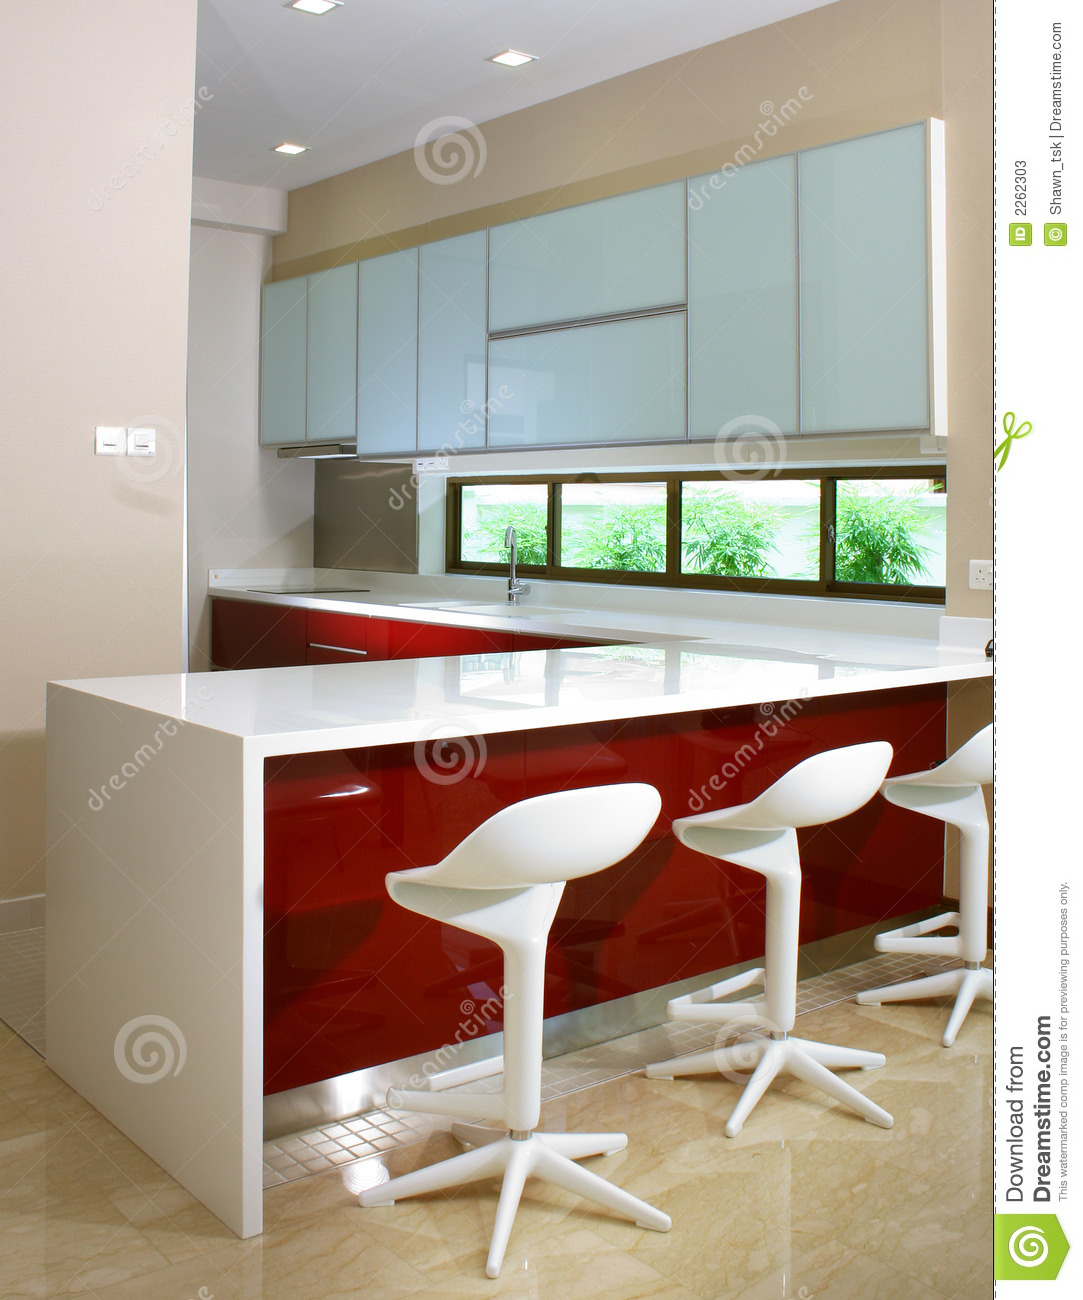 Kitchen And Bar Counter Stock Photos - Image: 2262303